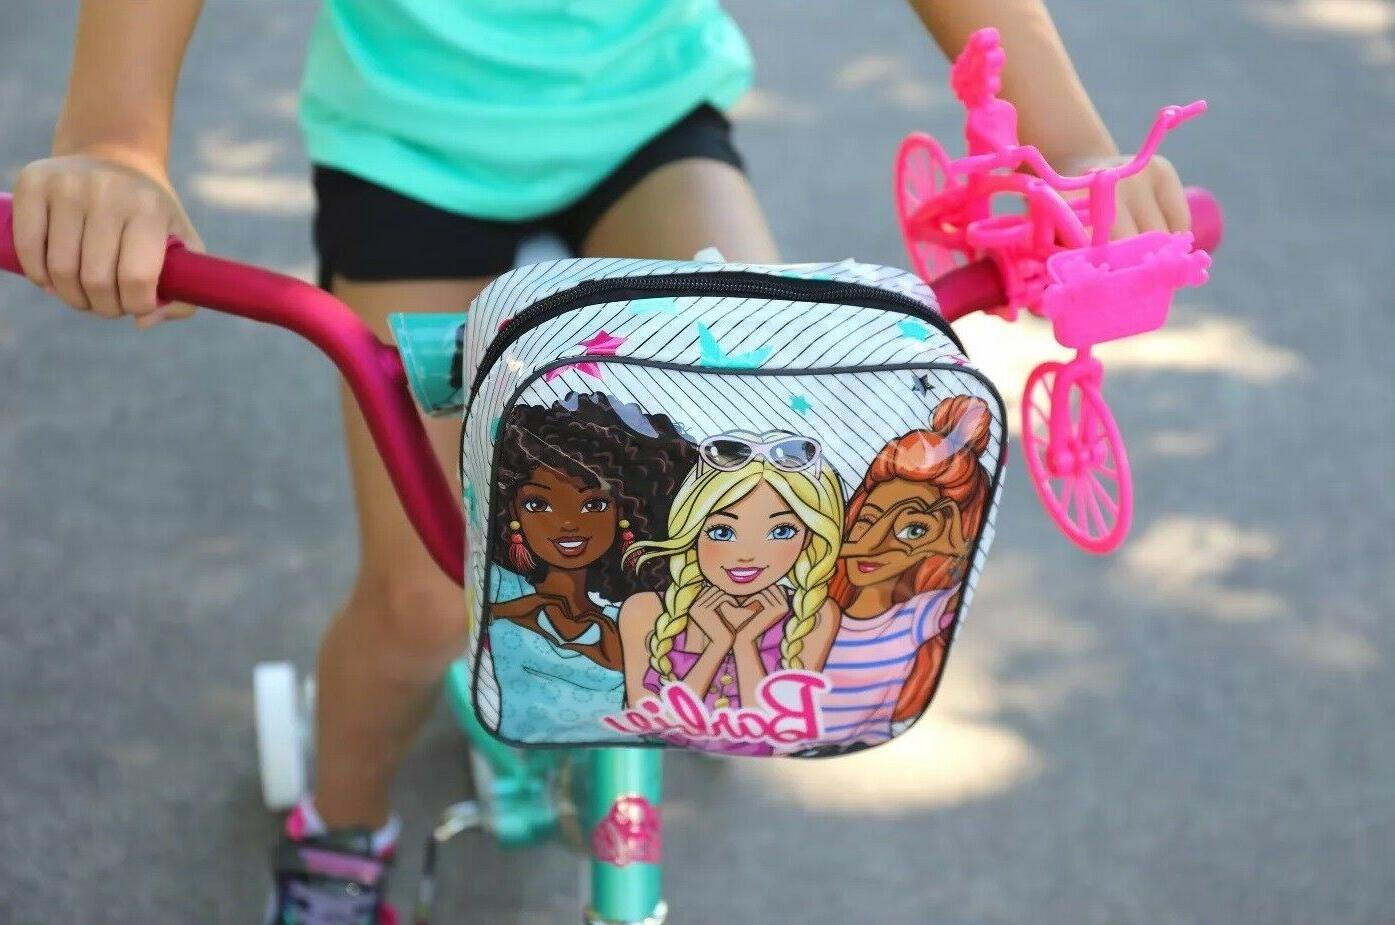 Barbie Bicycle 16 inch with Minibike